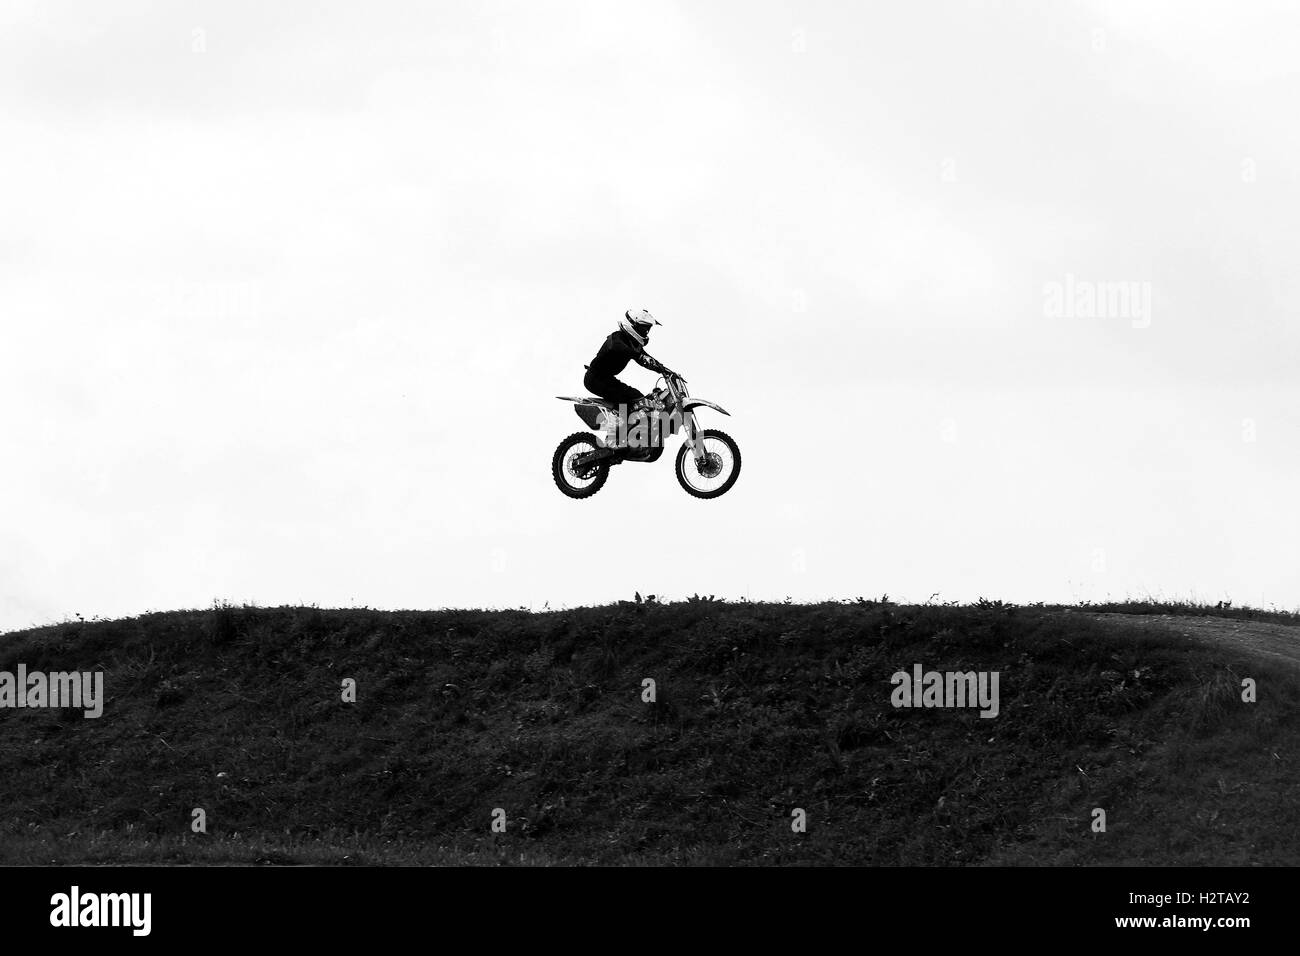 Motorbike jumping in the sky on hide speed black and white photo - Stock Image